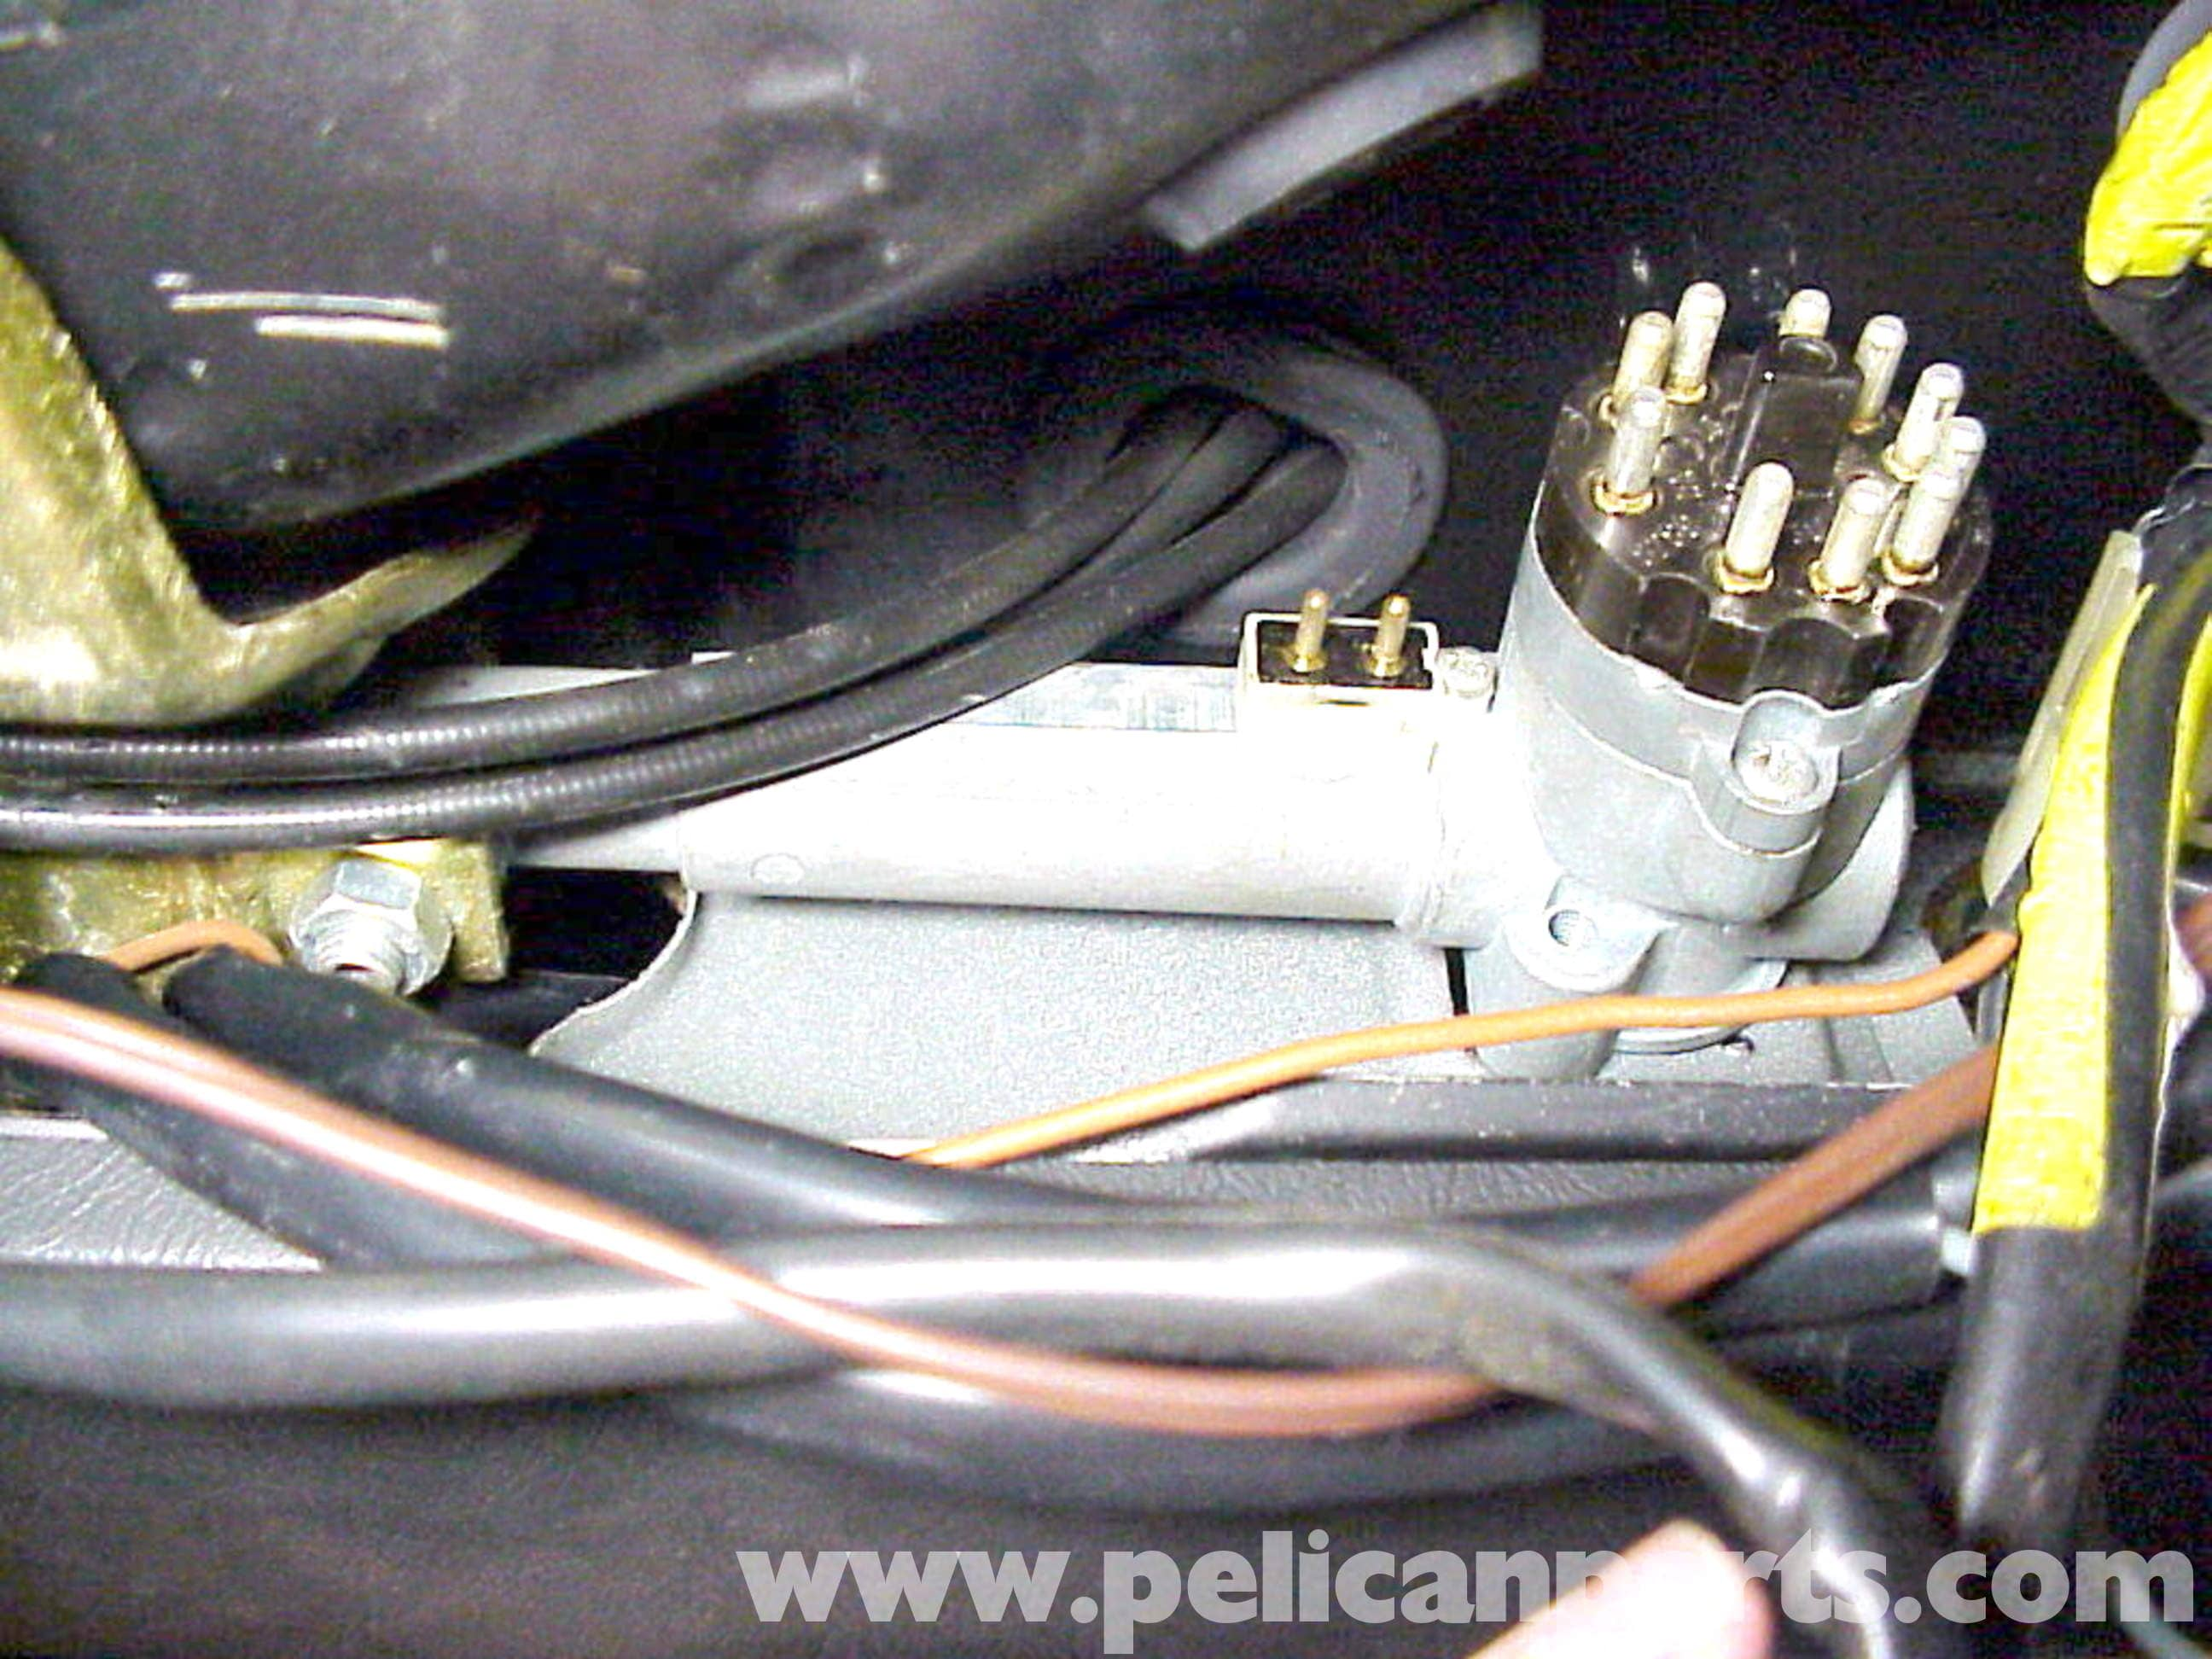 Pic2 porsche 911 ignition switch replacement 911 (1965 89) 930 1980 porsche 911 wiring diagram at n-0.co